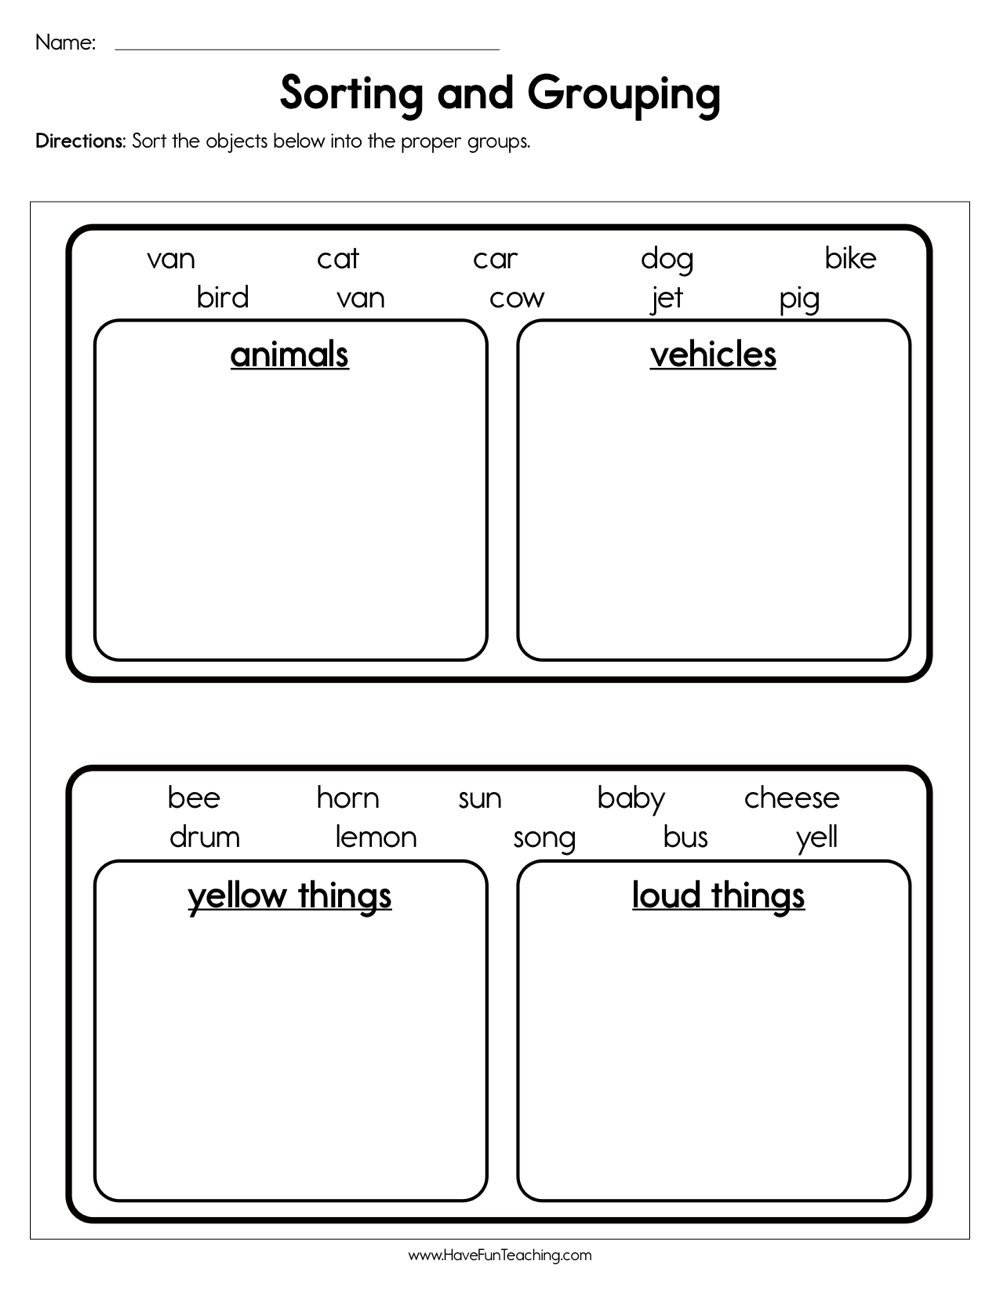 Kindergarten sorting Worksheets sorting and Grouping Worksheet